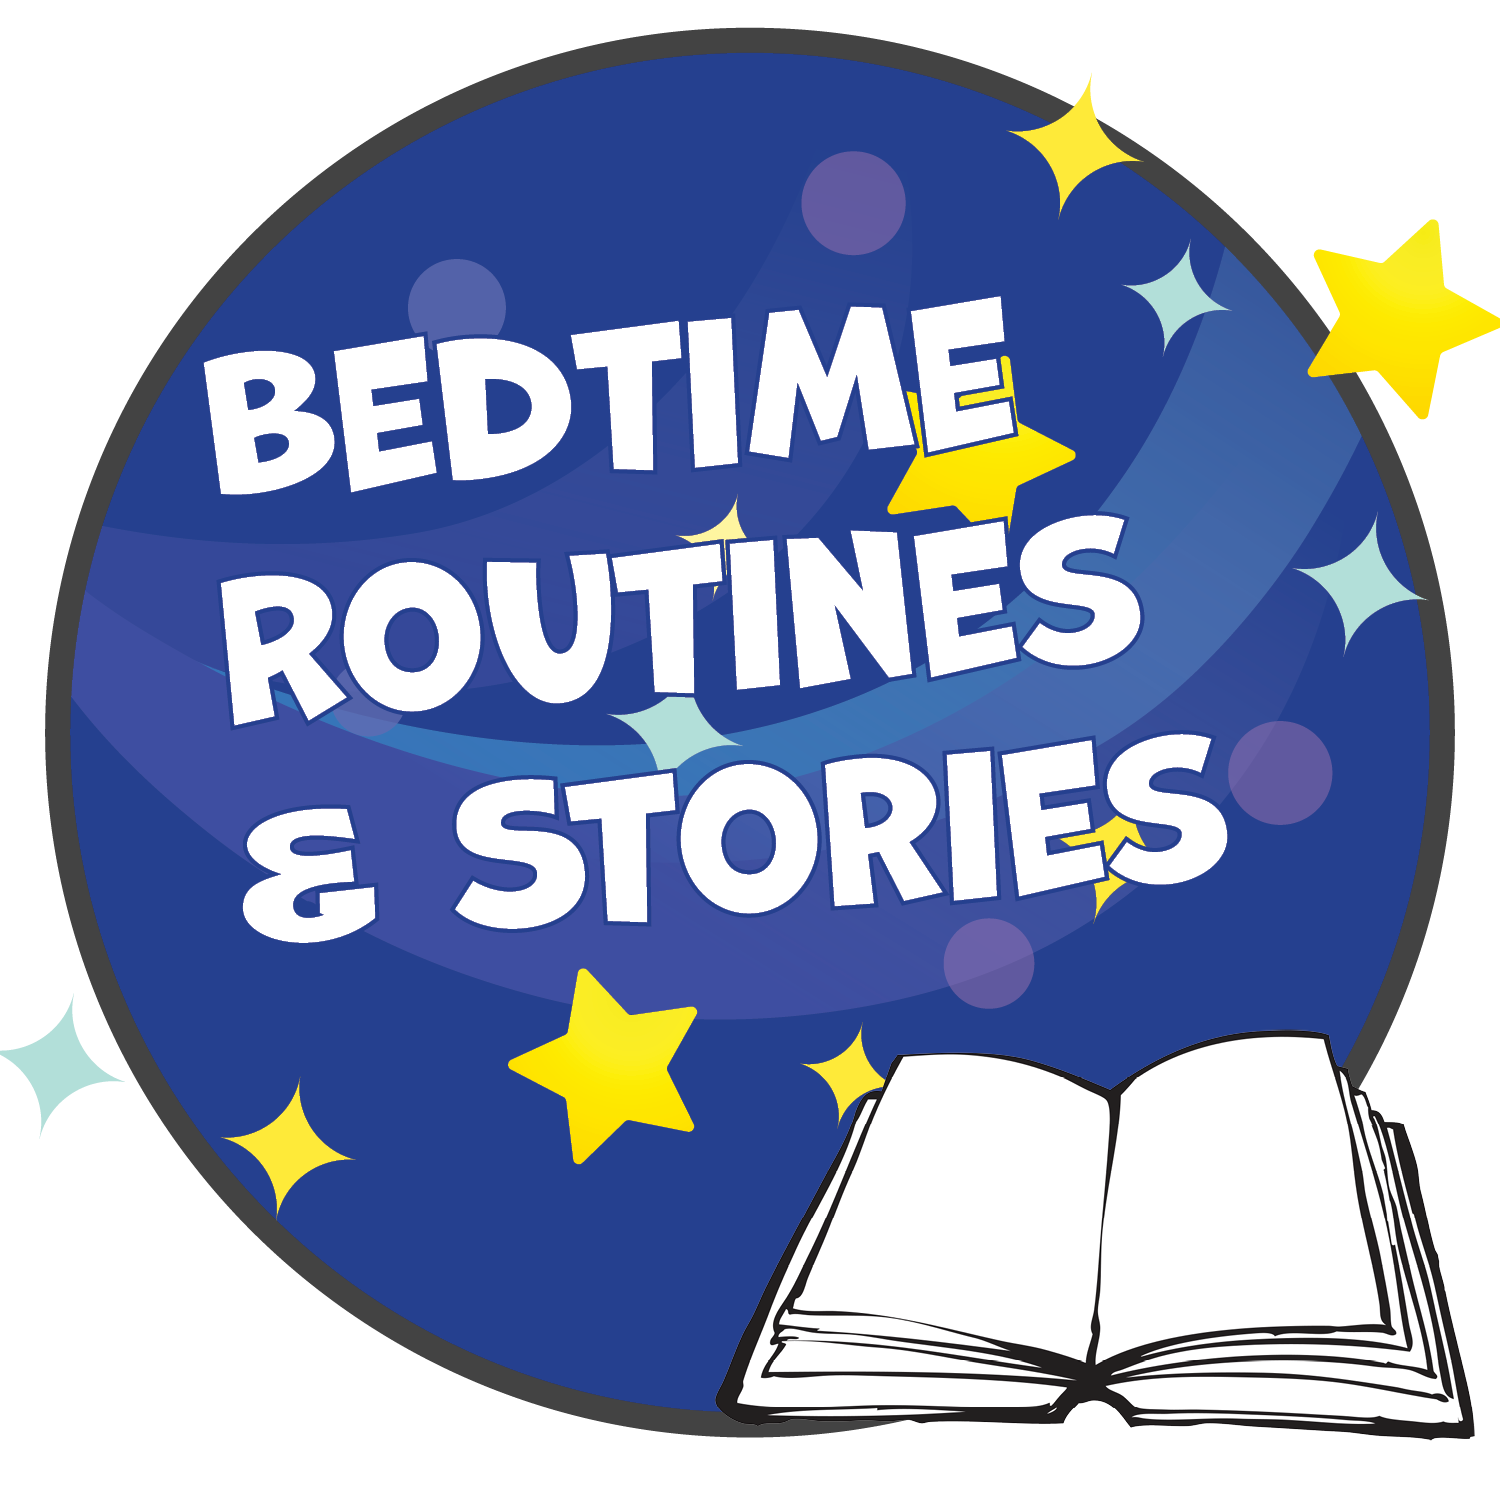 Bedtime Routines & Stories